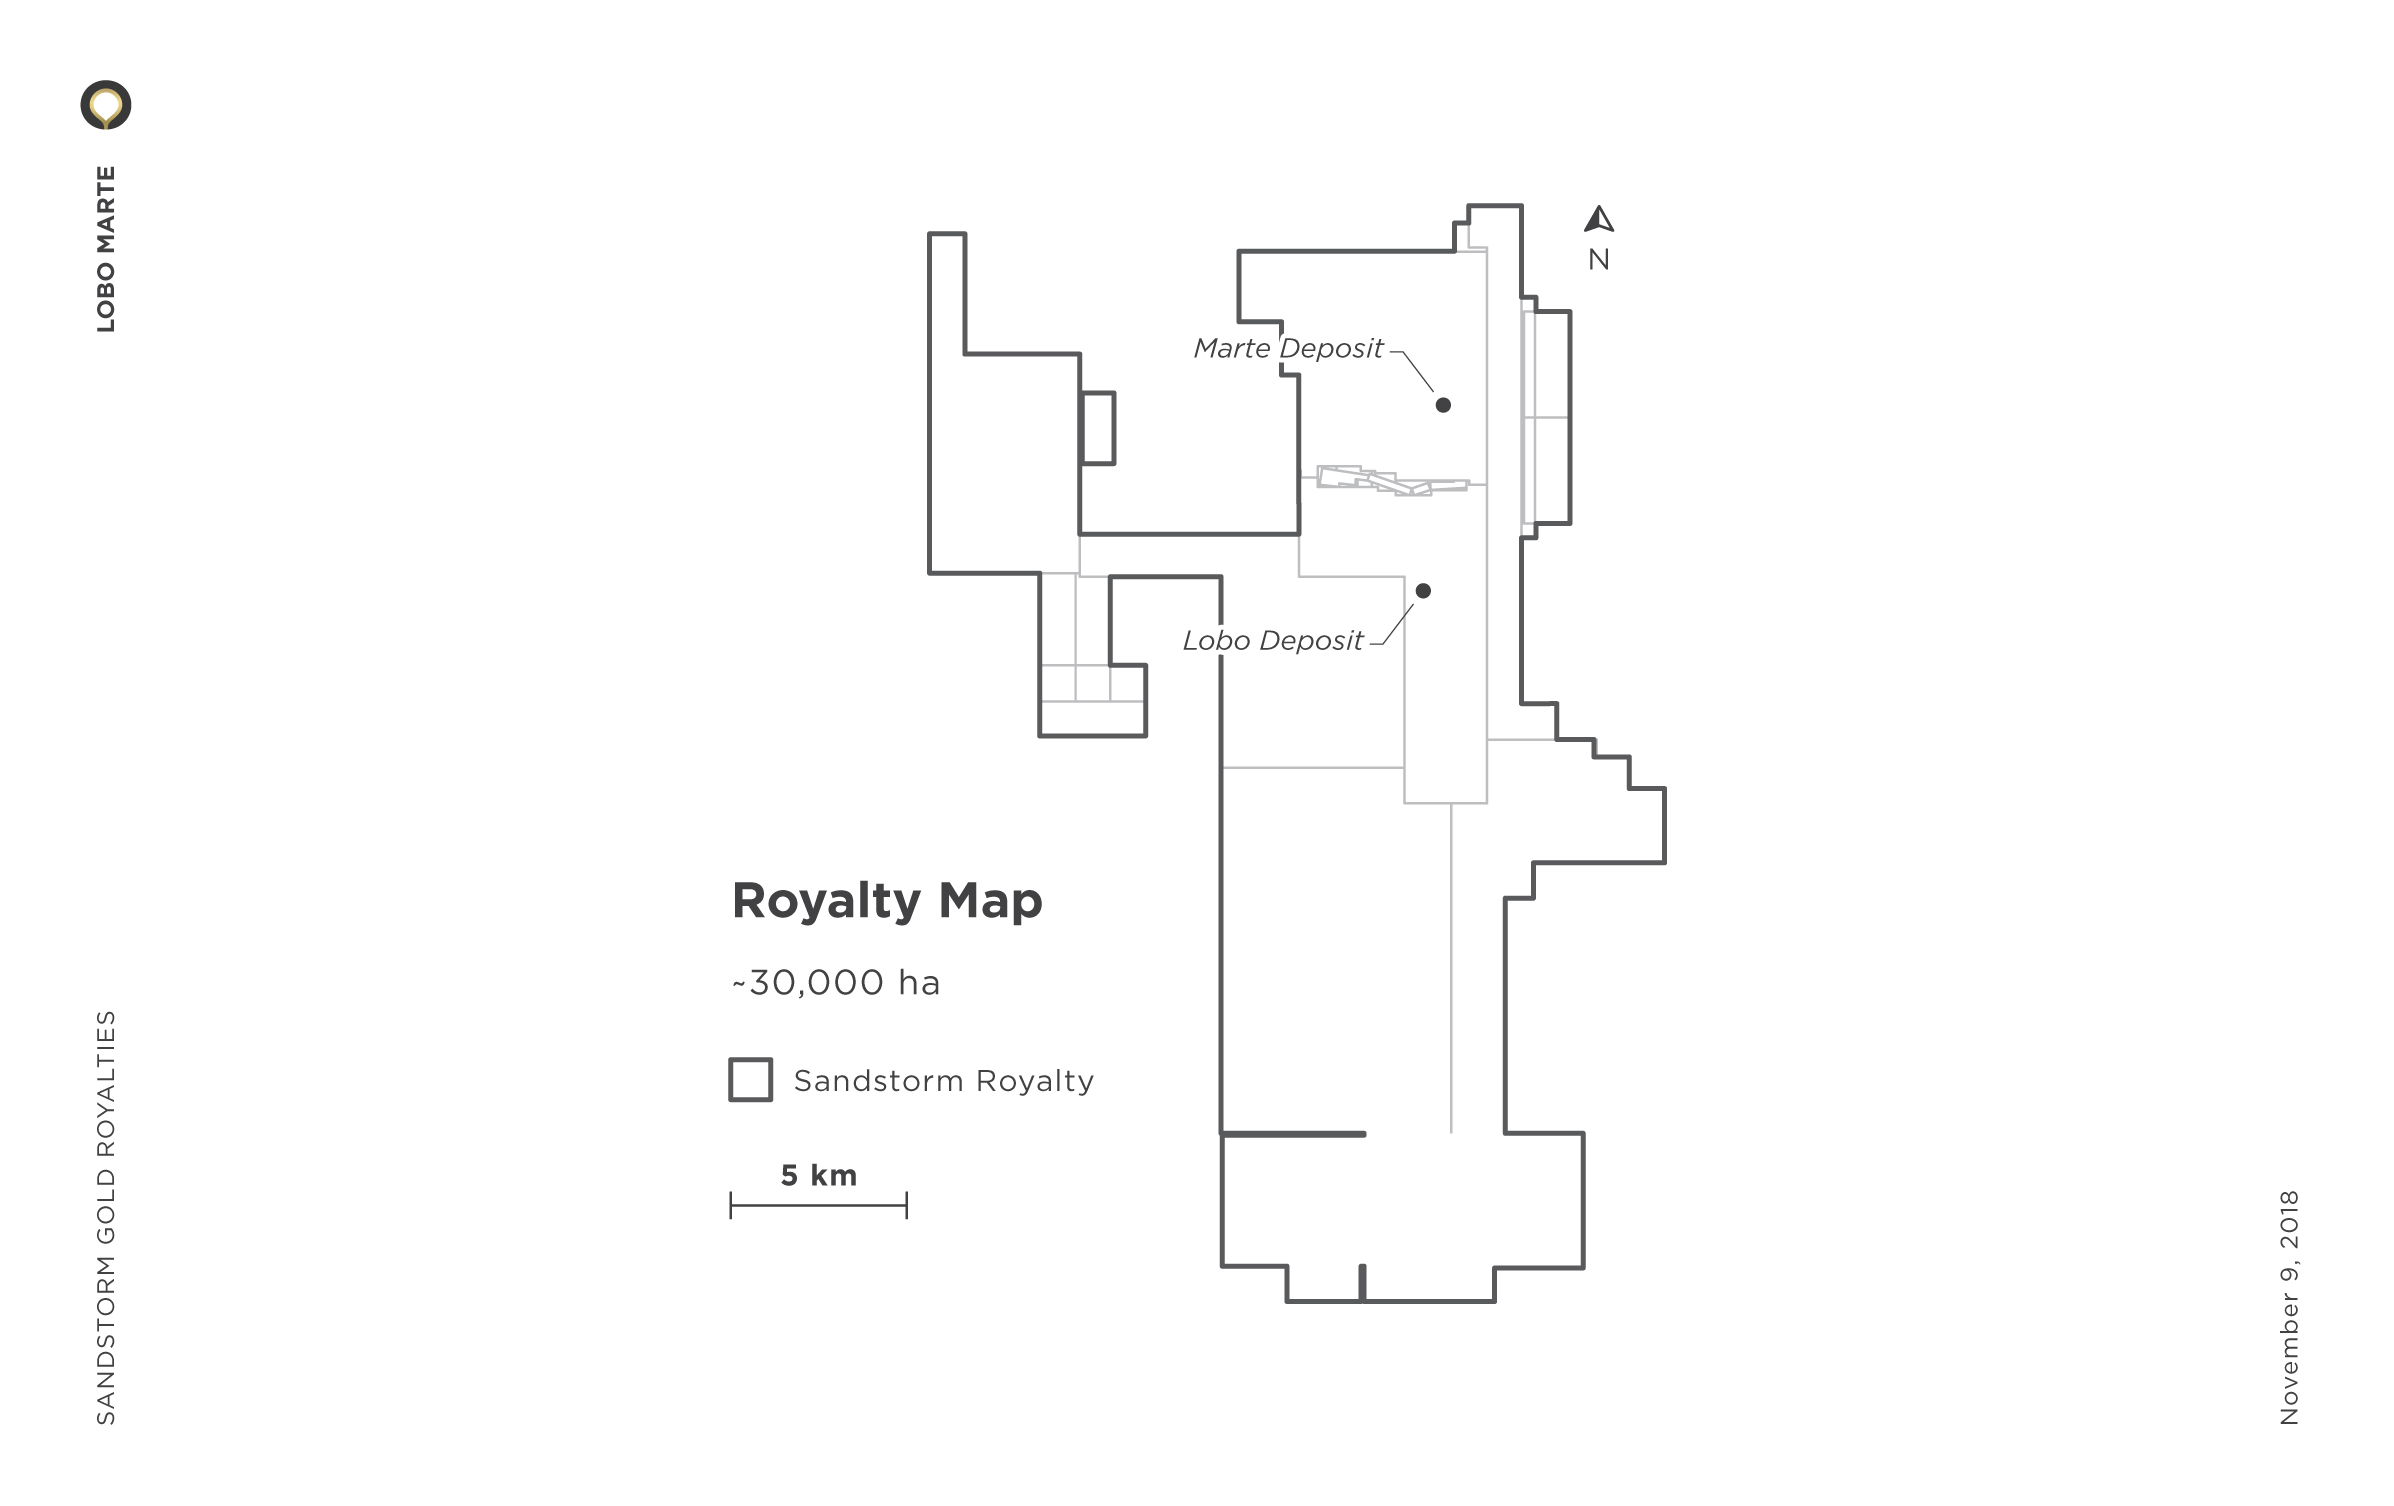 Lobo Marte Royalty Map